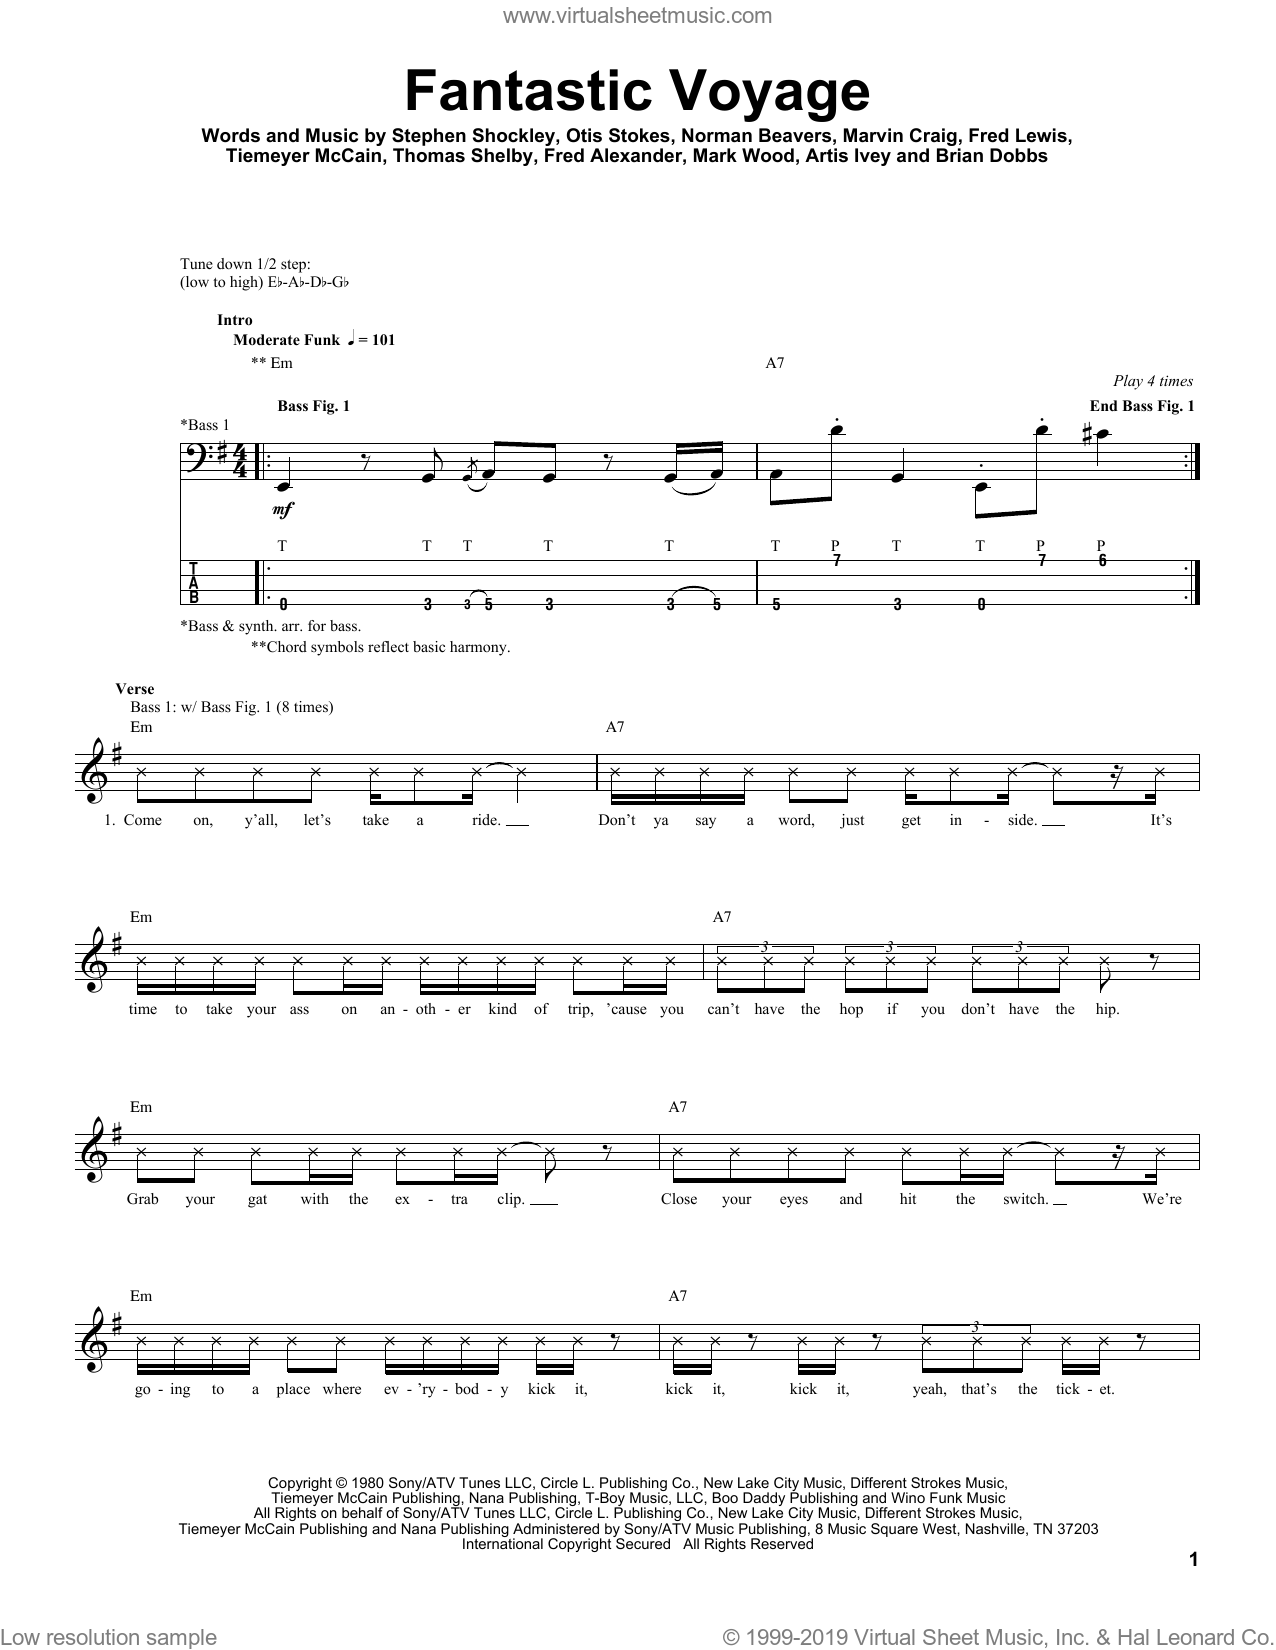 Fantastic Voyage sheet music for bass (tablature) (bass guitar) by Coolio, Artis Ivey, Brian Dobbs, Fred Alexander, Fred Lewis, Mark Wood, Marvin Craig, Norman Beavers, Otis Stokes, Stephen Shockley, Thomas Shelby and Tiemeyer McCain, intermediate skill level